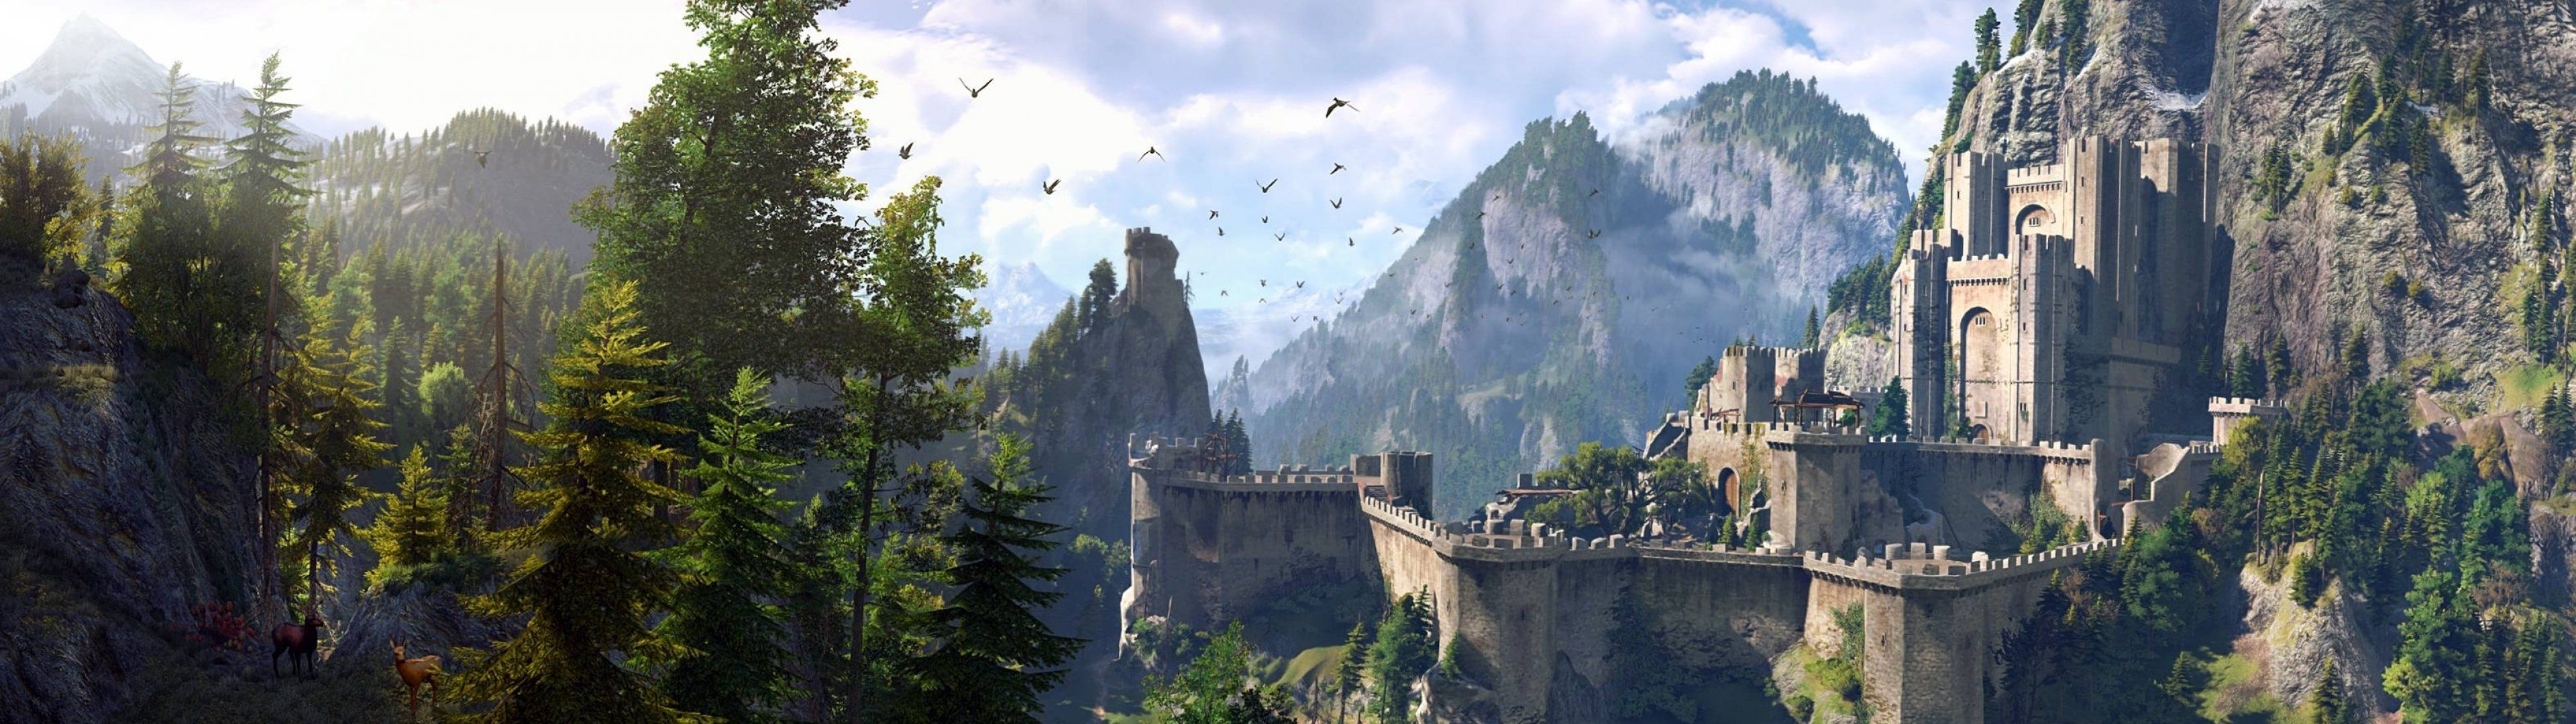 3840 X 1080 Castle Wallpapers Top Free 3840 X 1080 Castle